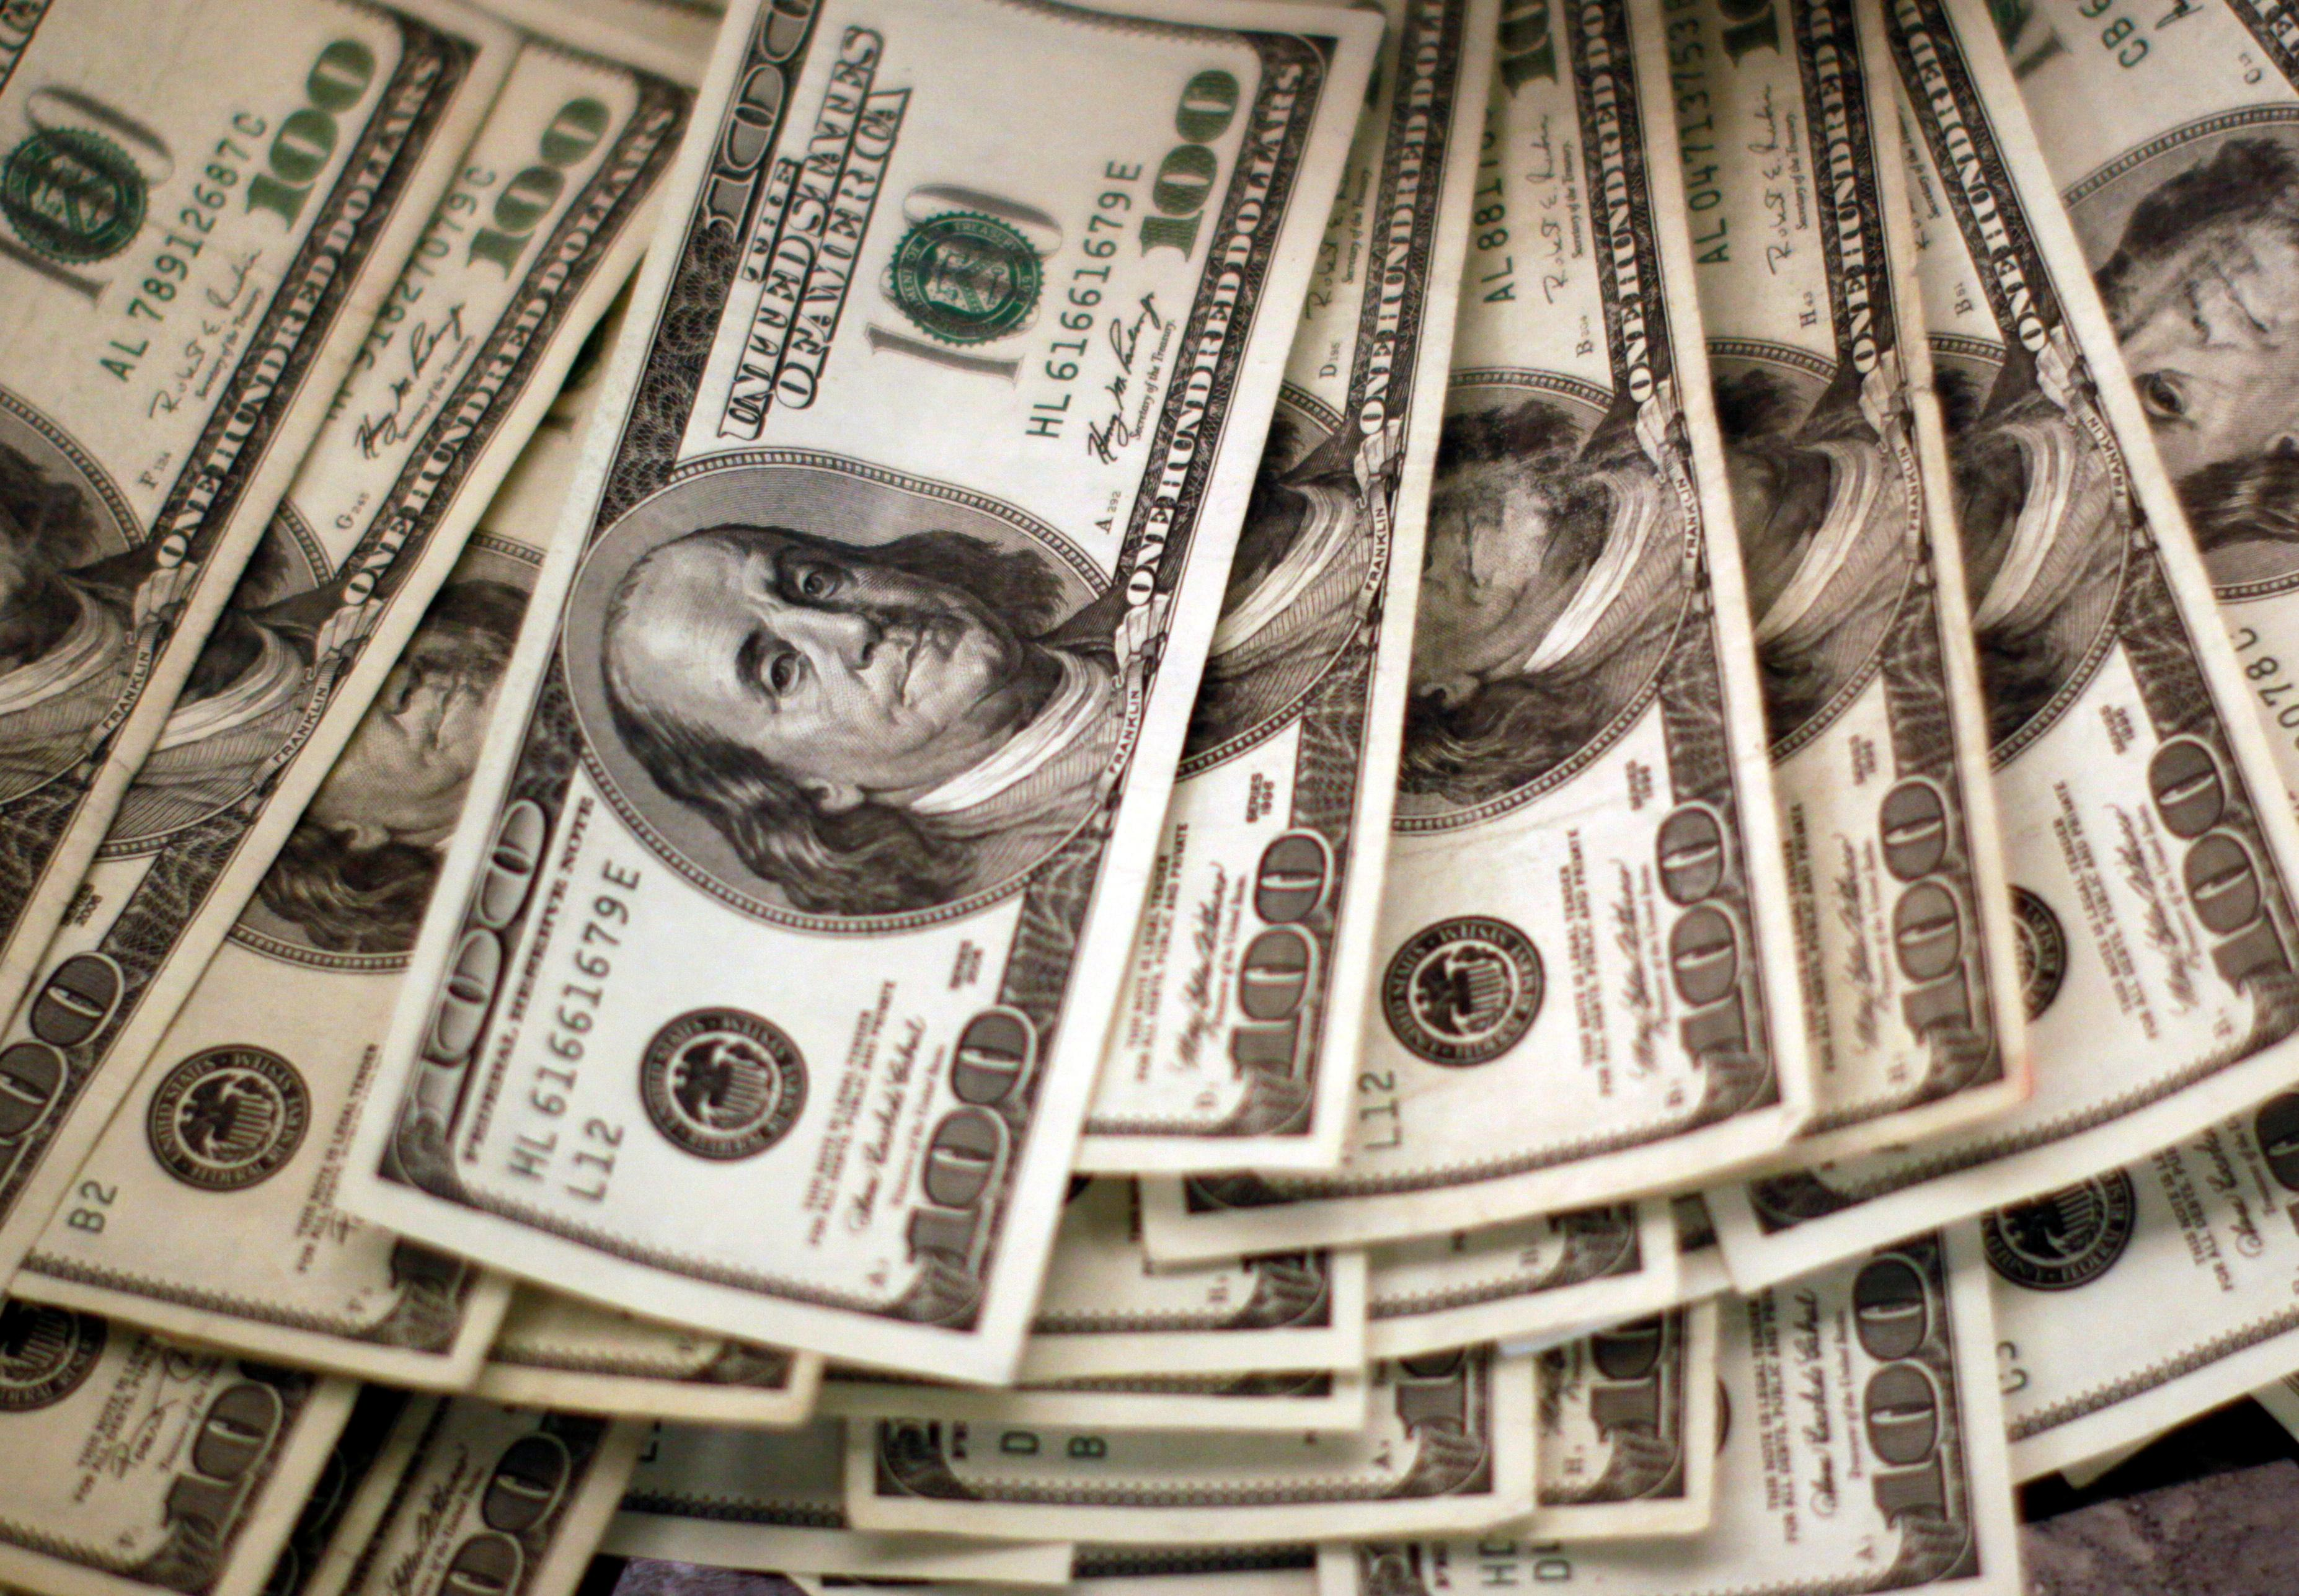 African Americans underserved by U.S. banks: study